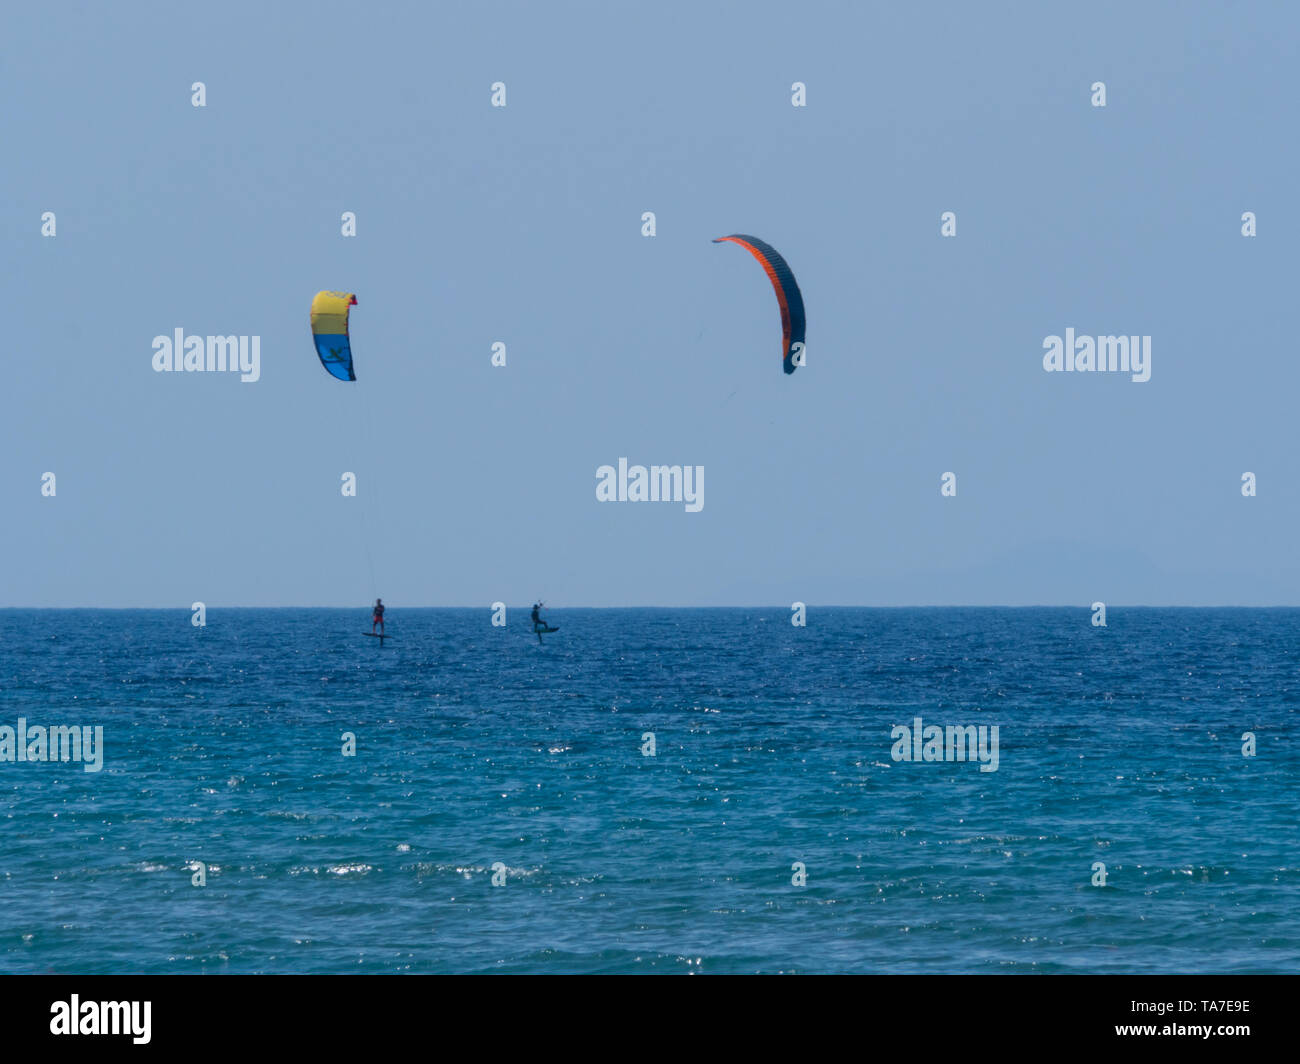 Summer water sports in clear open sea ocean - Stock Image